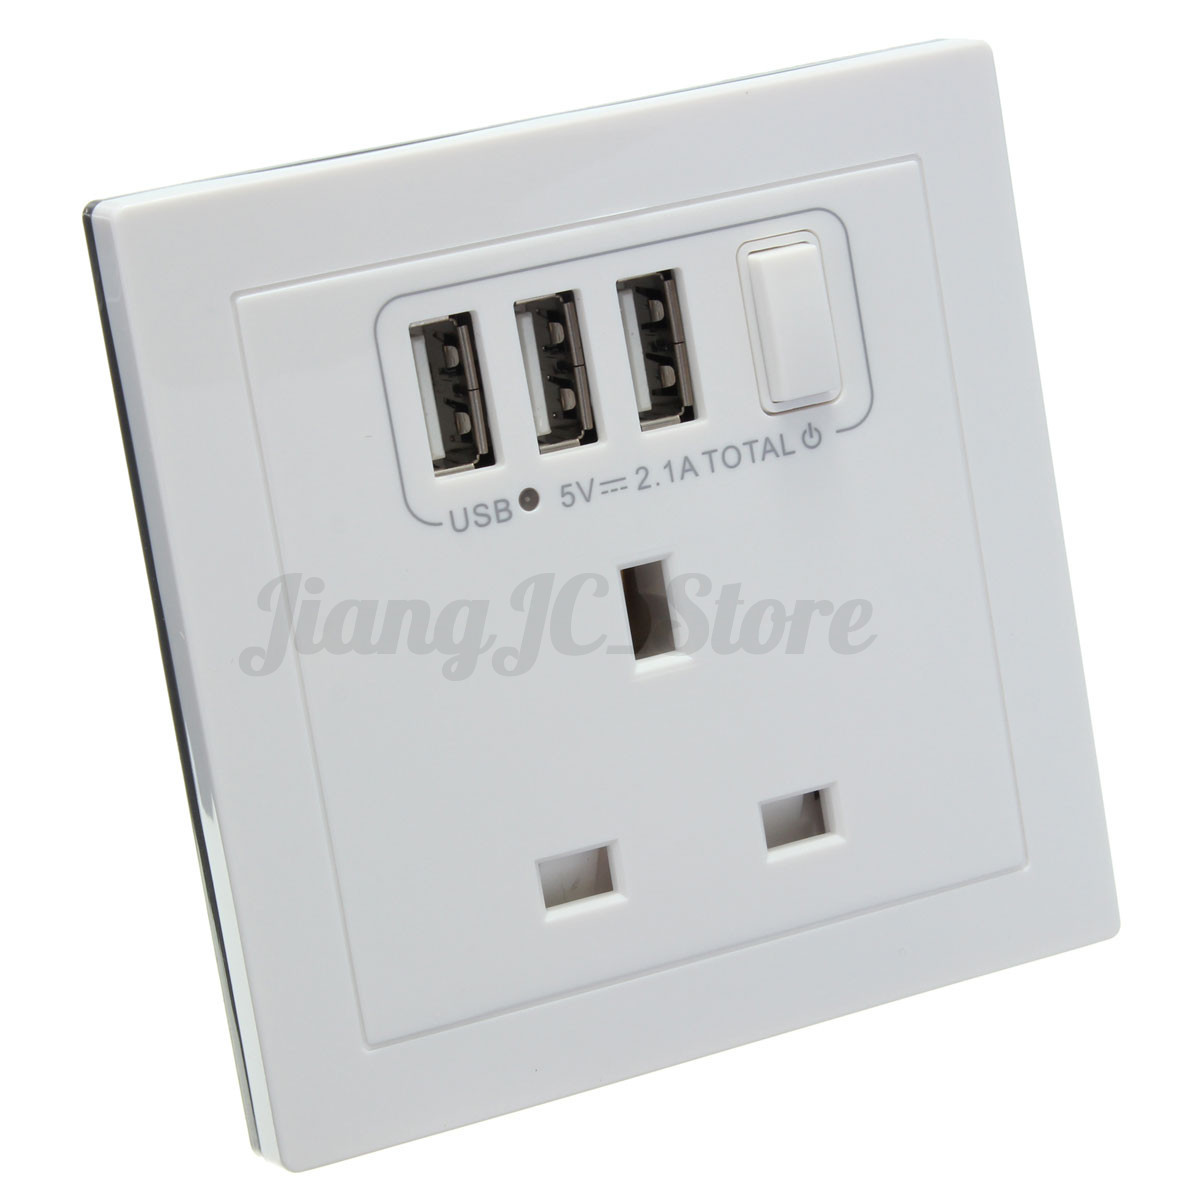 Universal Electrical AU USB Power Outlet Light Switch Wall Socket TV LAN Frame eBay